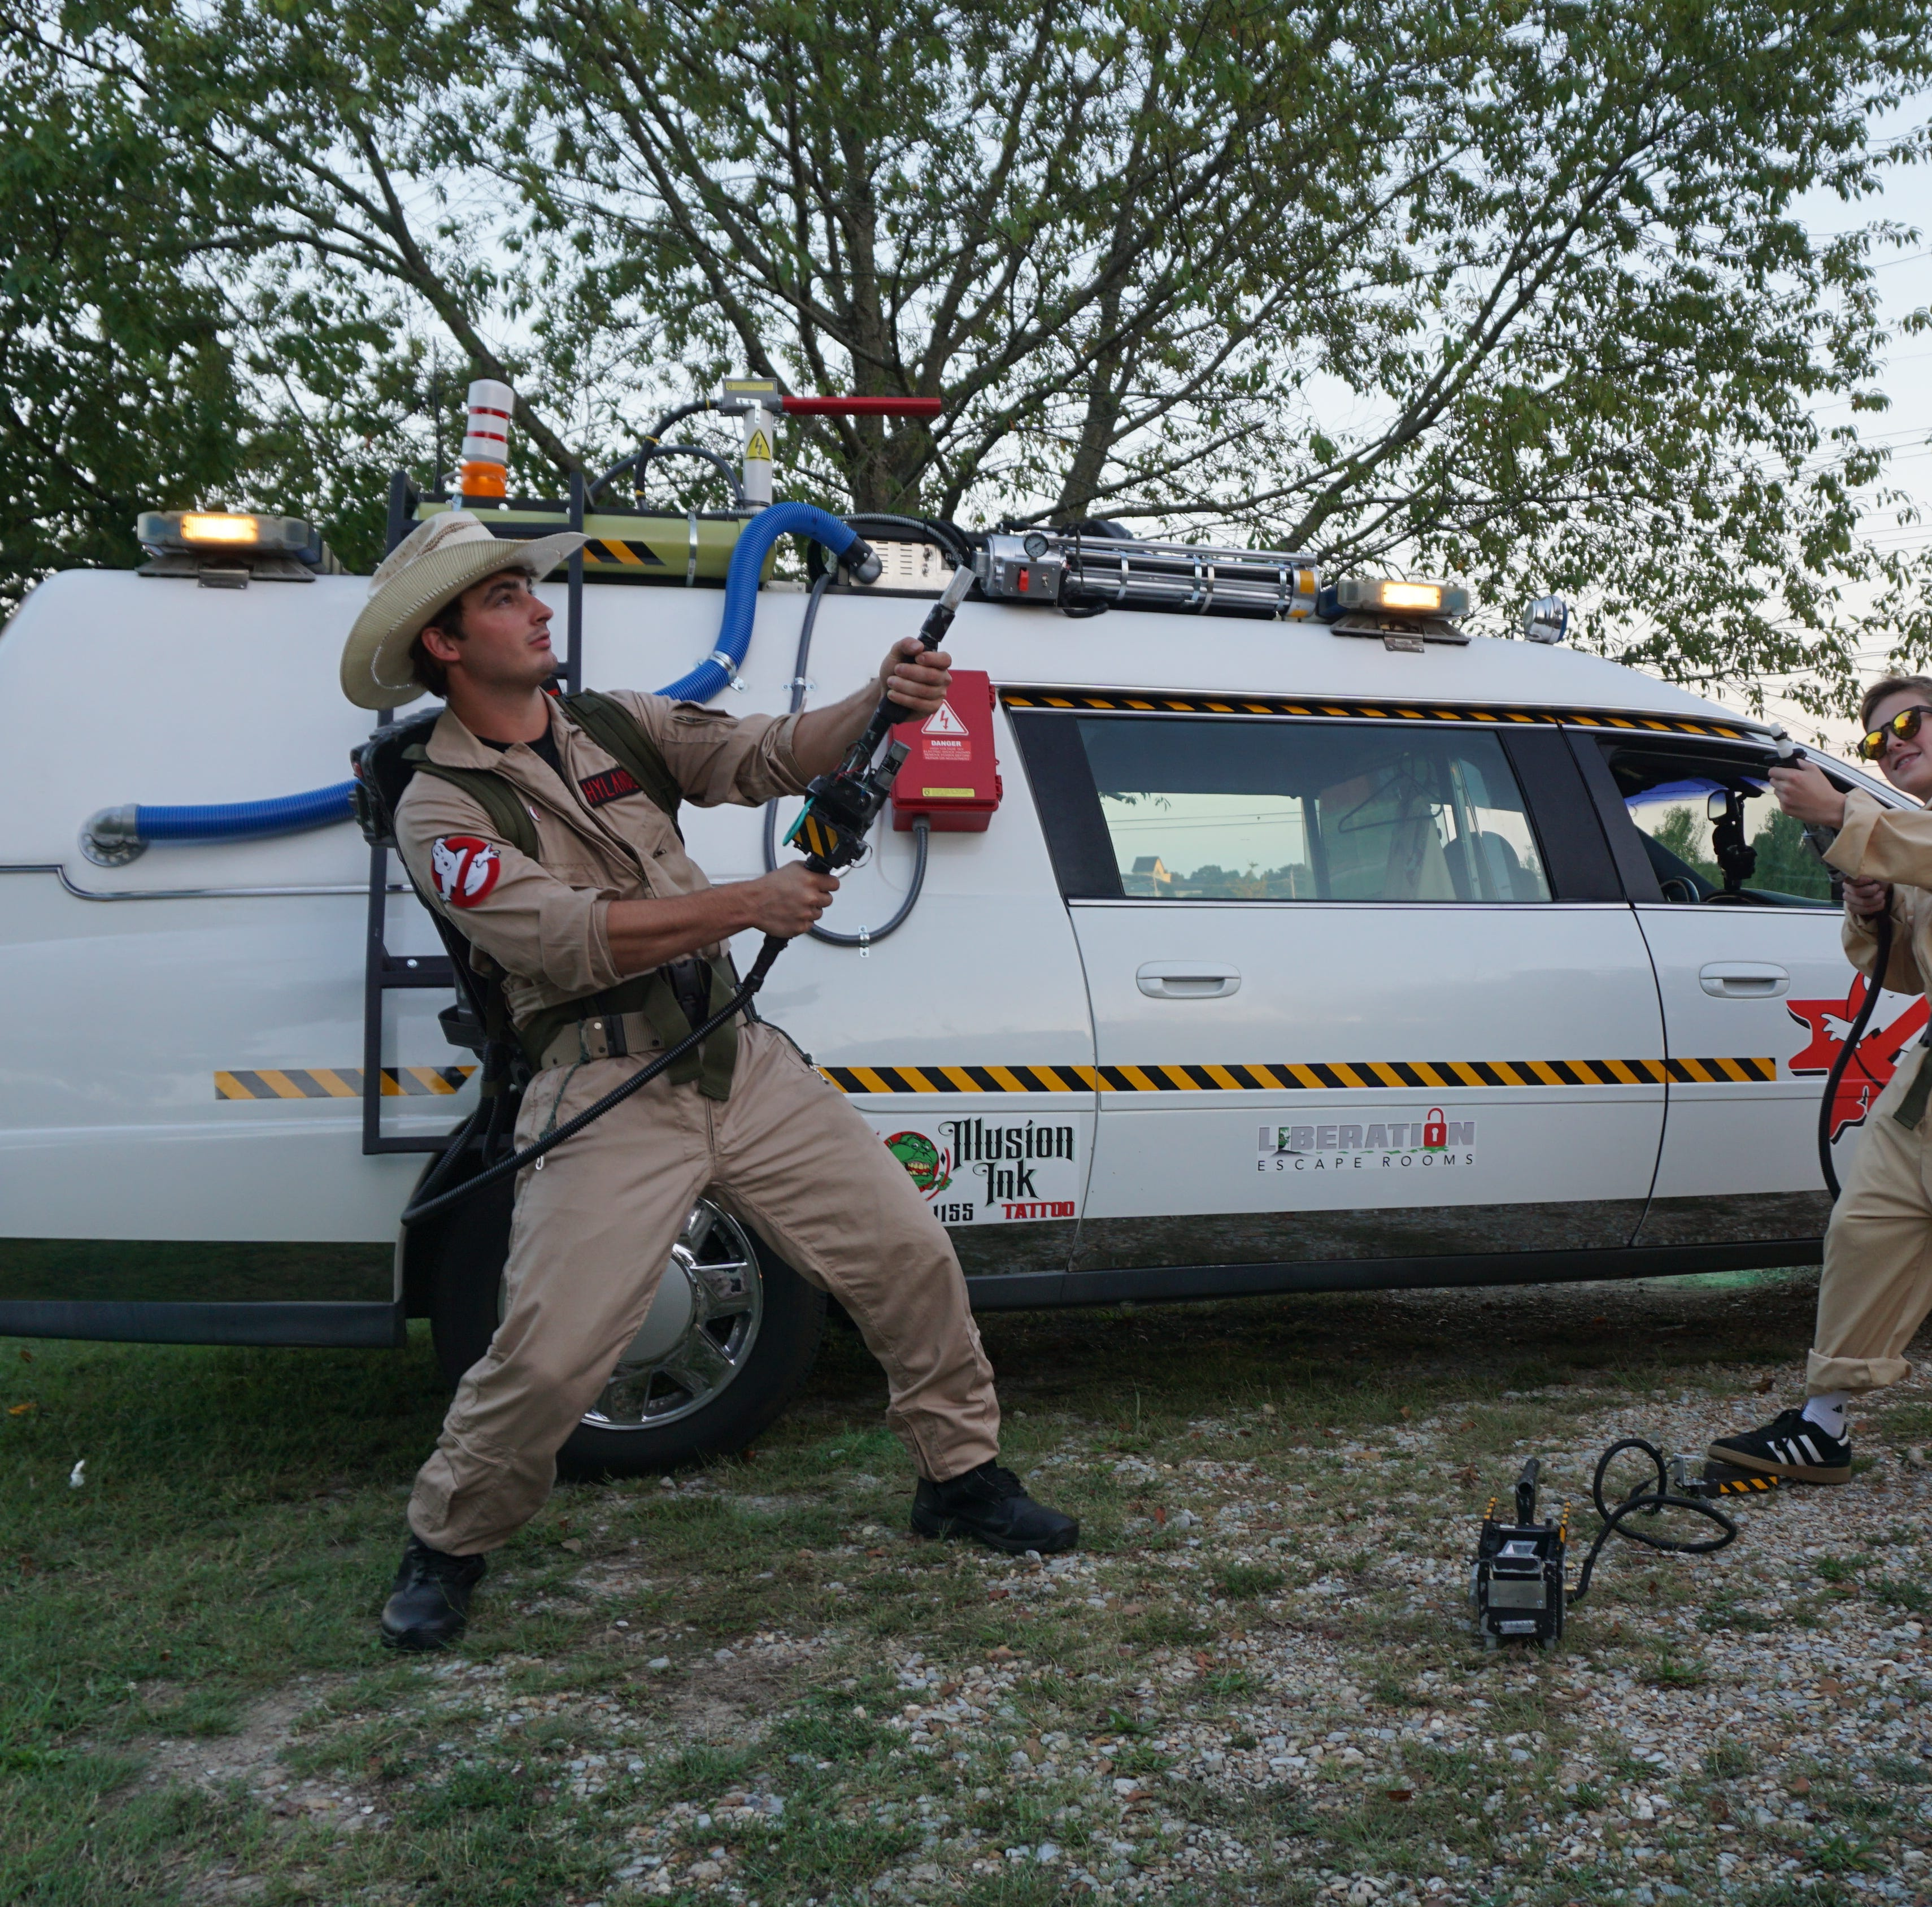 Who ya gonna call? Ghostbusters on the scene in DeSoto County